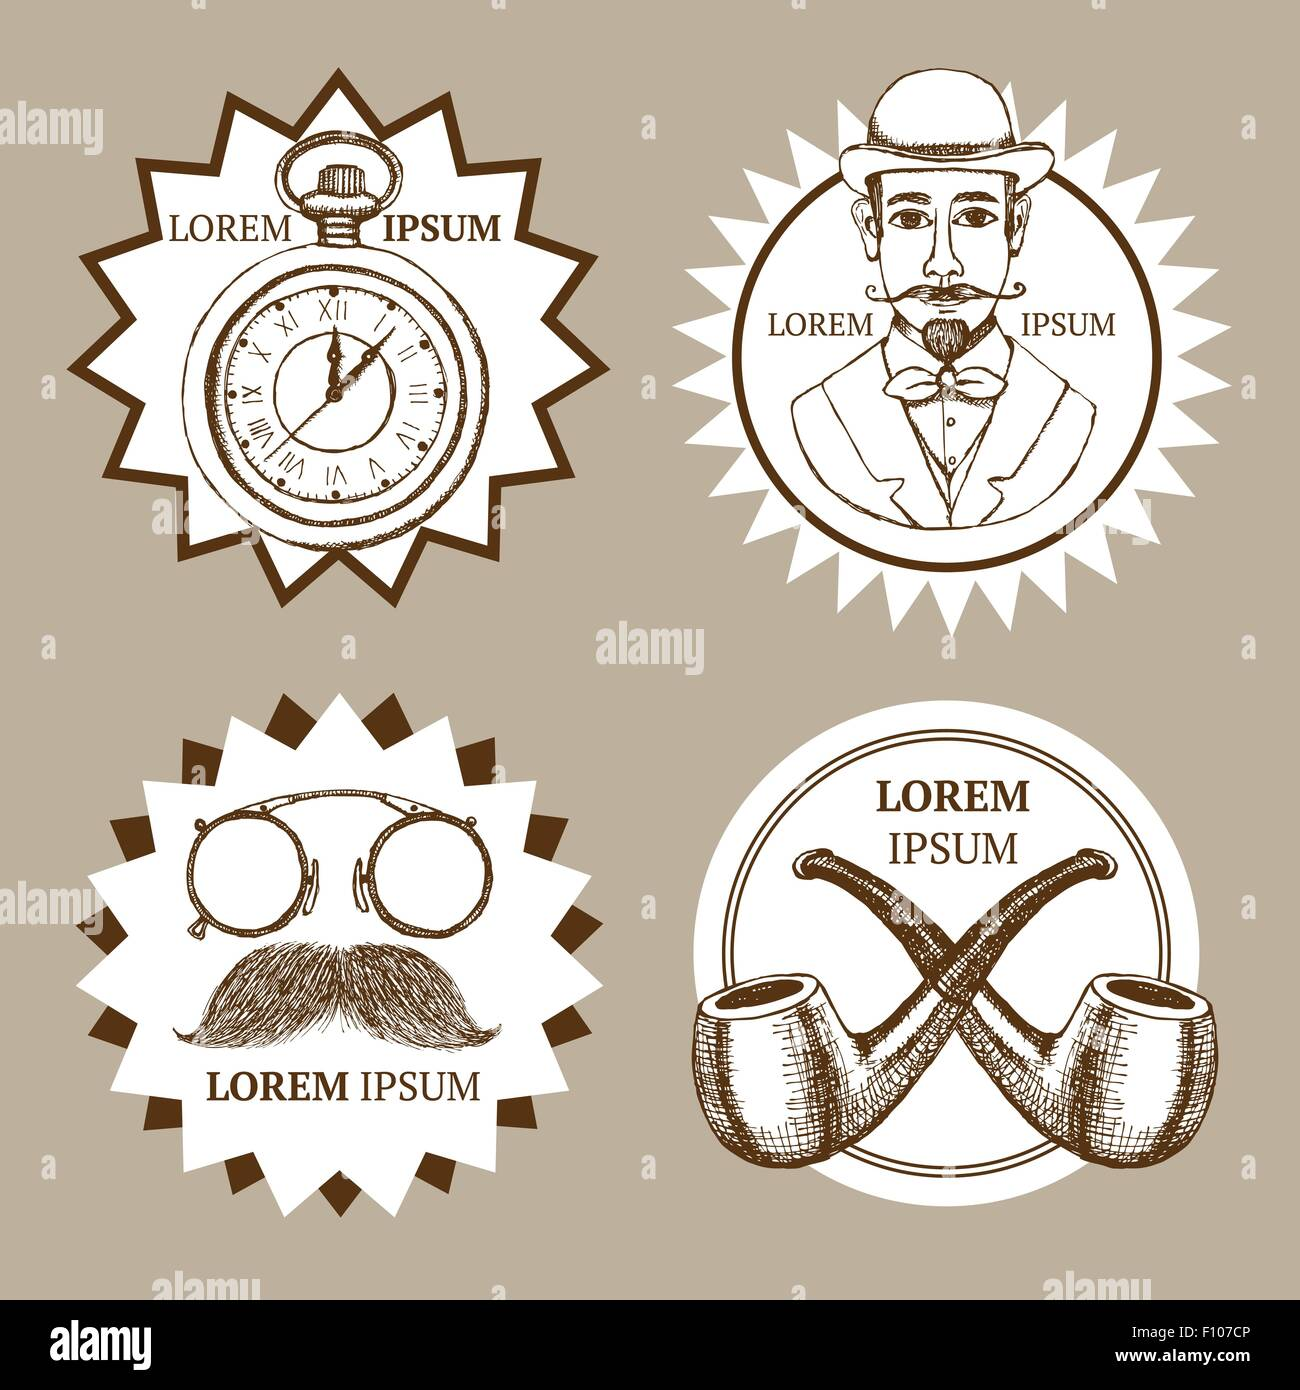 Sketch set of gentleman's logotypes in vintage style, vector - Stock Image